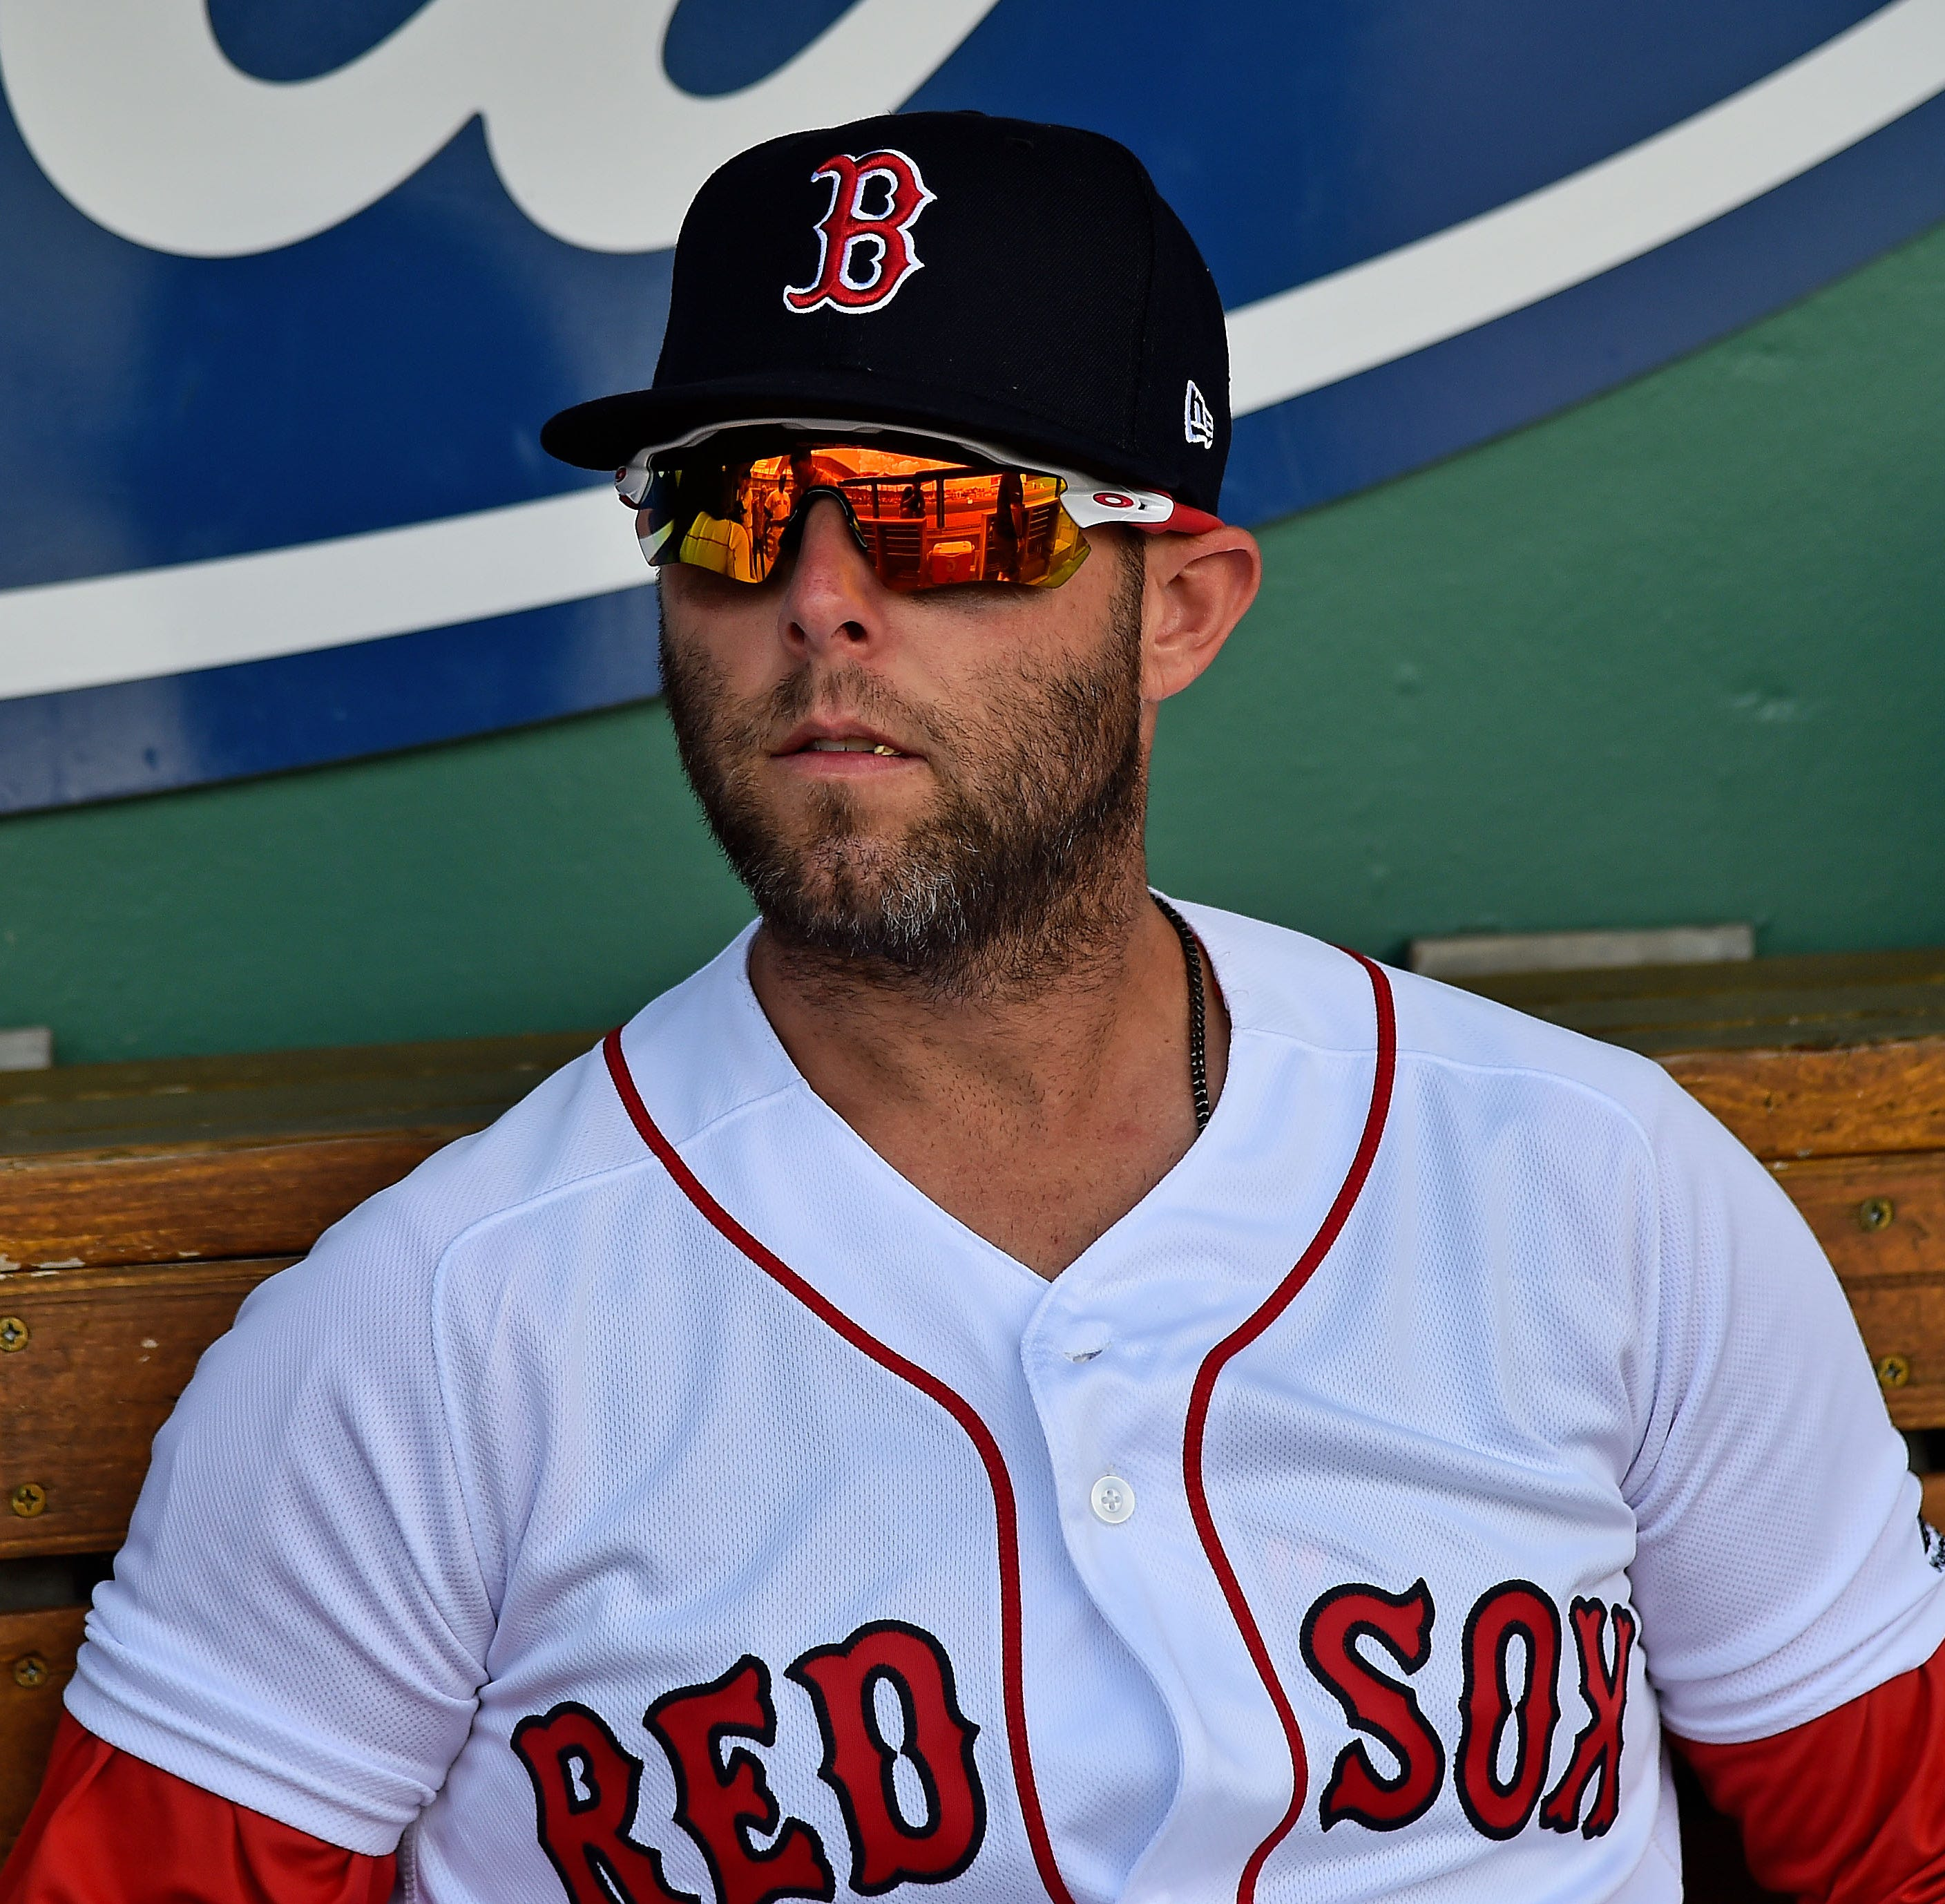 Former AL MVP Dustin Pedroia will play for Greenville Drive on Opening Night